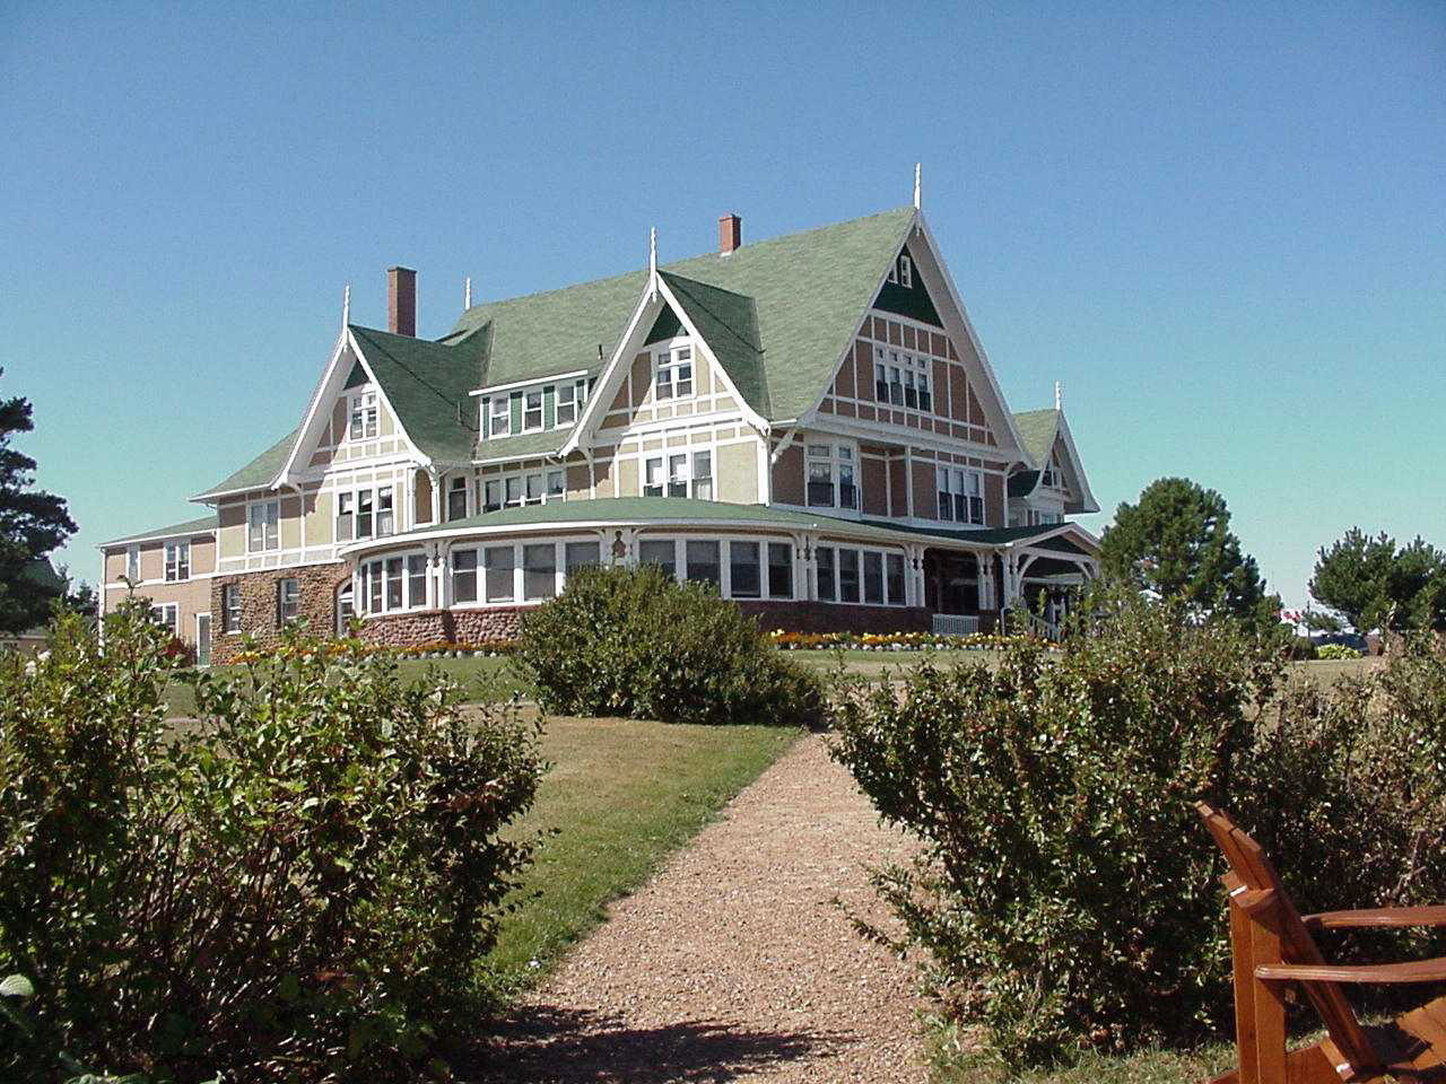 Dalvay-by-the-Sea Hotel